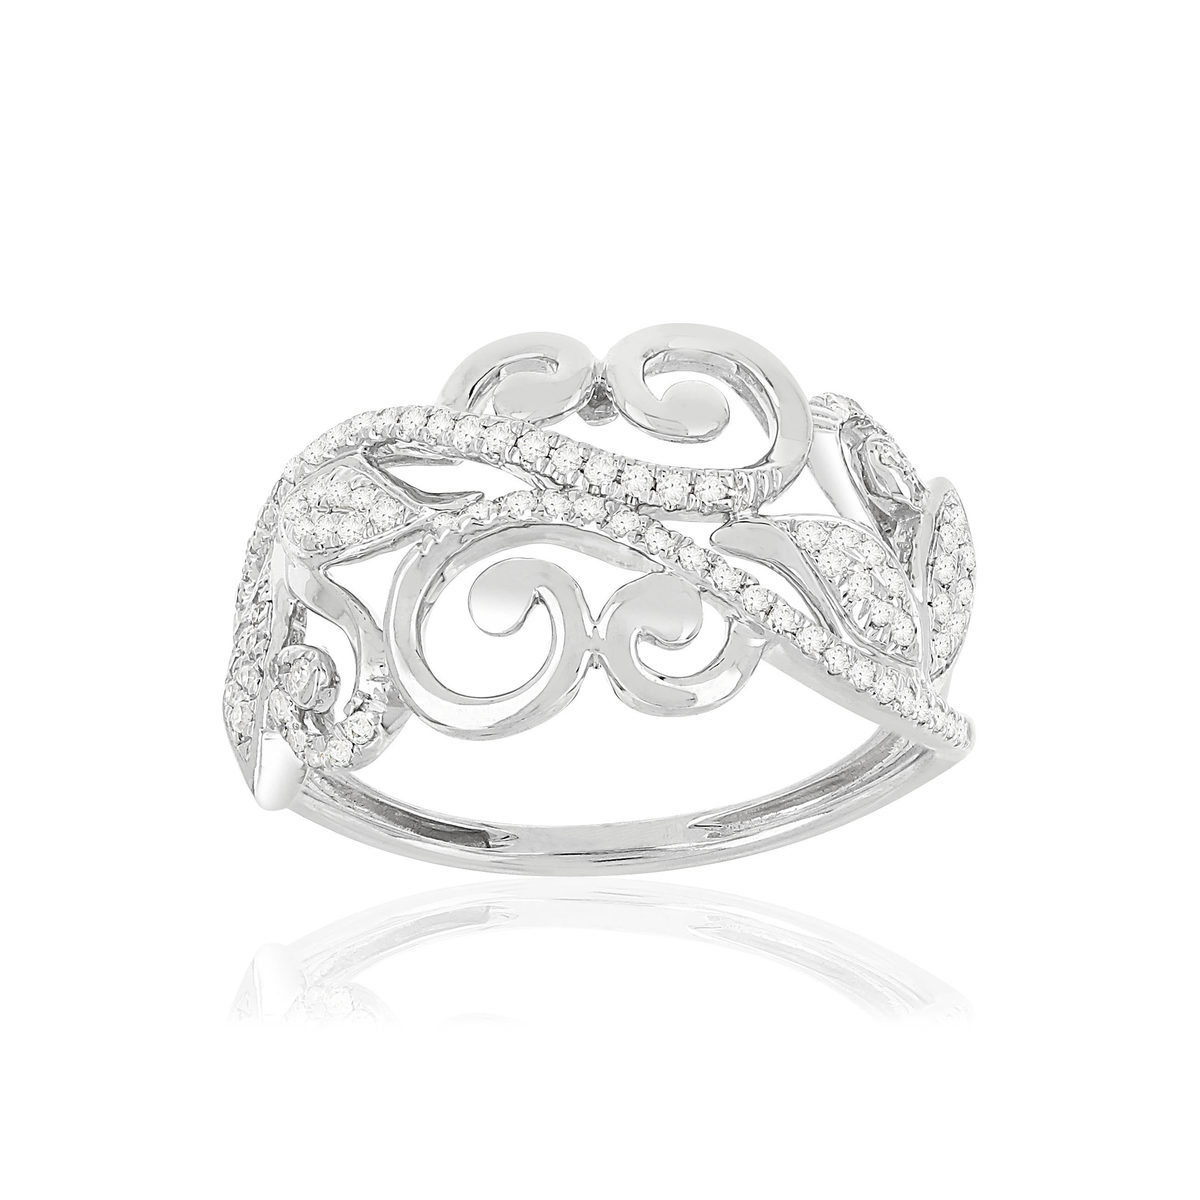 Bague MATY Or 375 blanc Diamants - vue V1